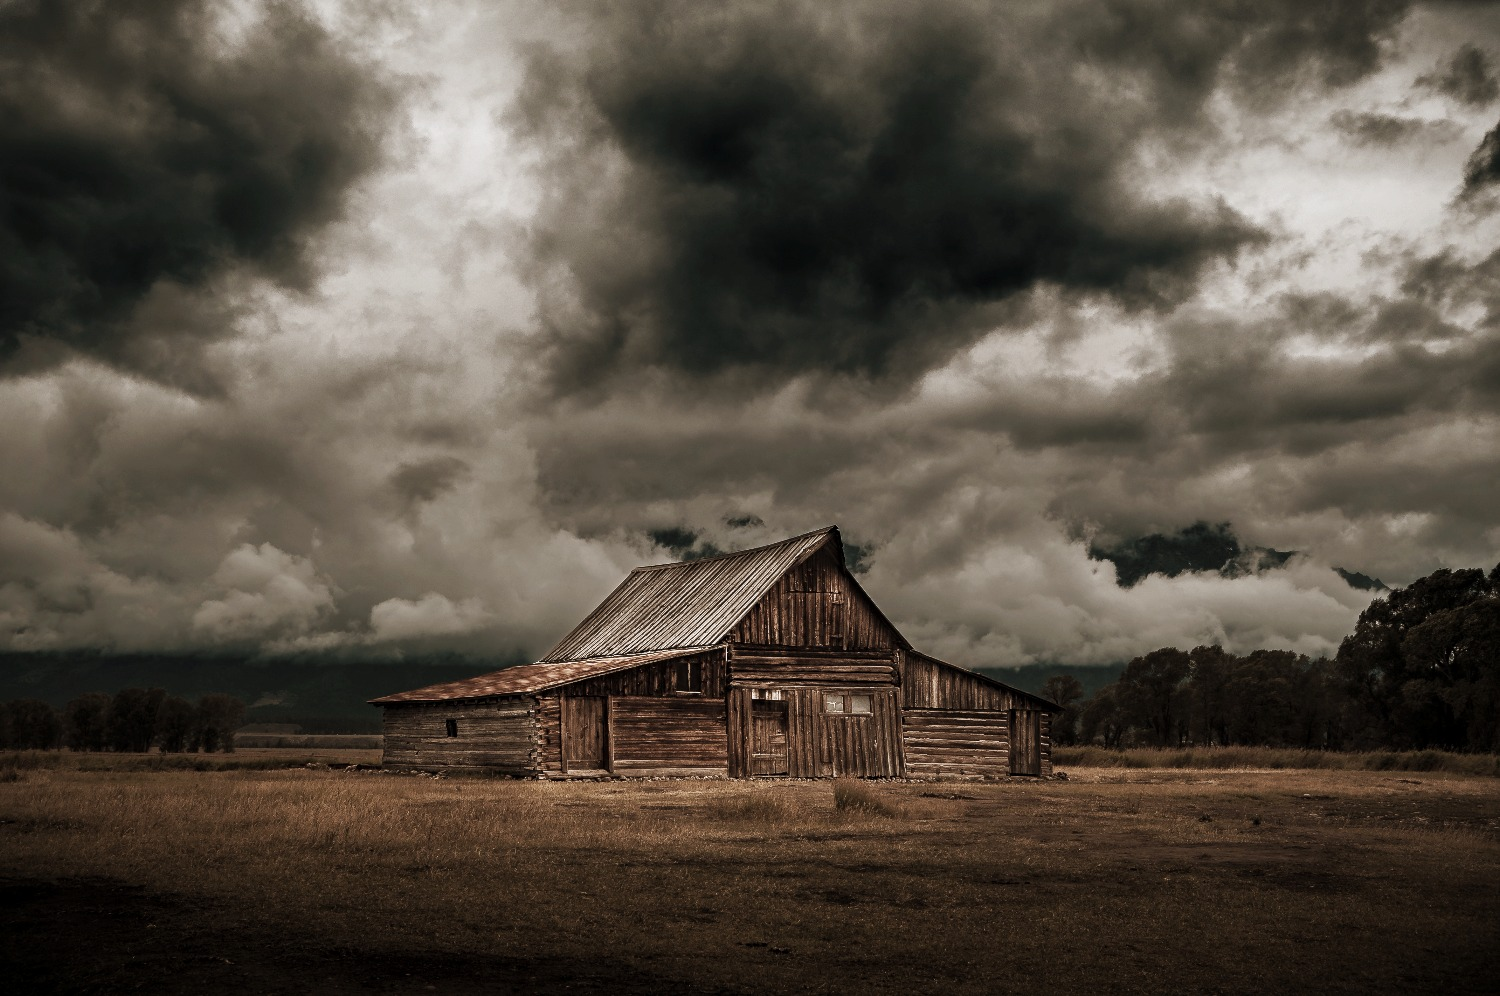 boss-fight-free-high-quality-stock-images-photos-photography-old-barn-dark-clouds - Copie_edited